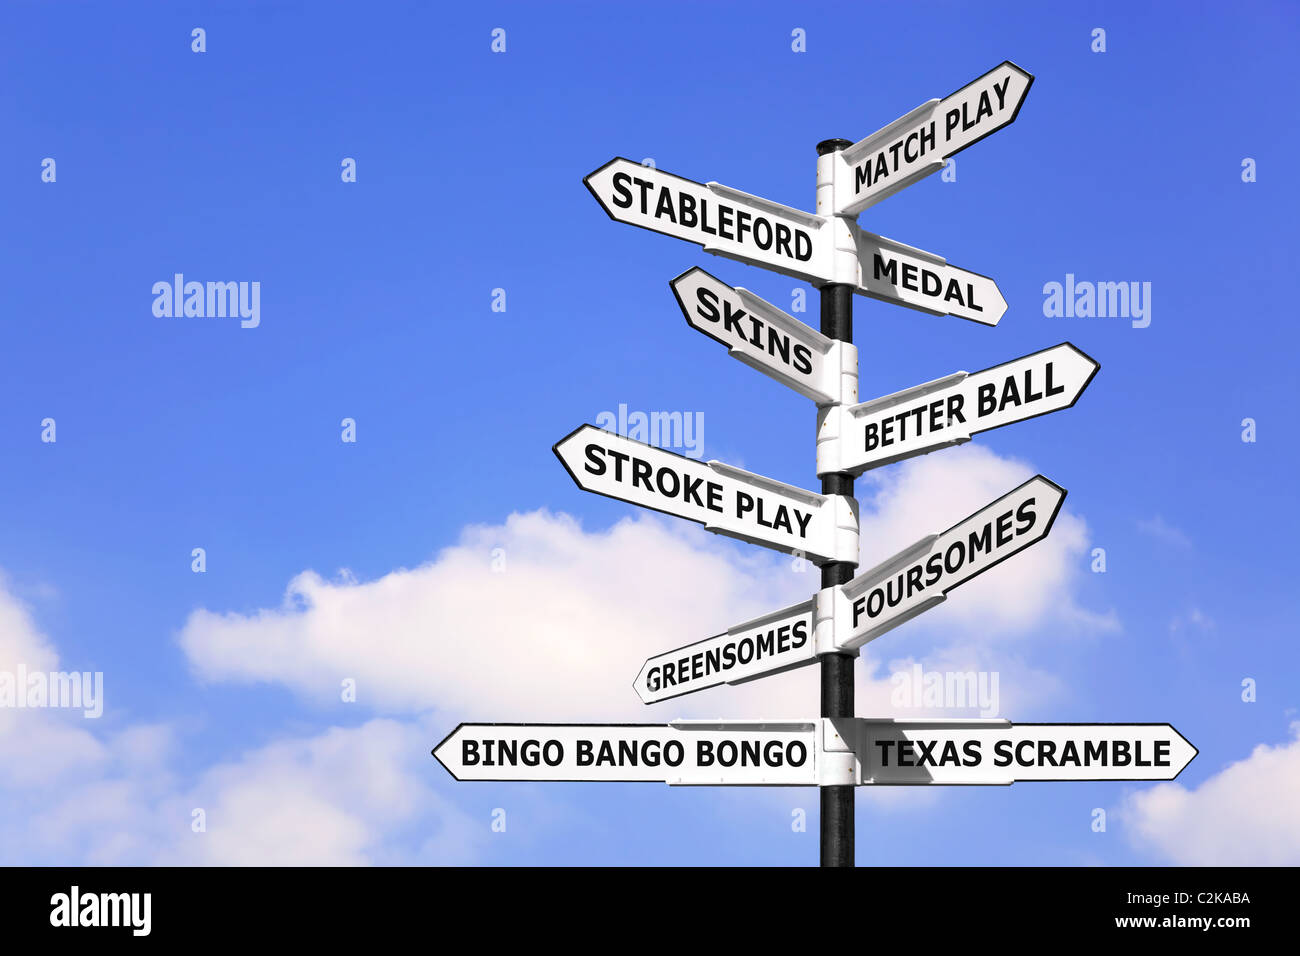 Concept image of a signpost with types of golf competition on the arrows. - Stock Image